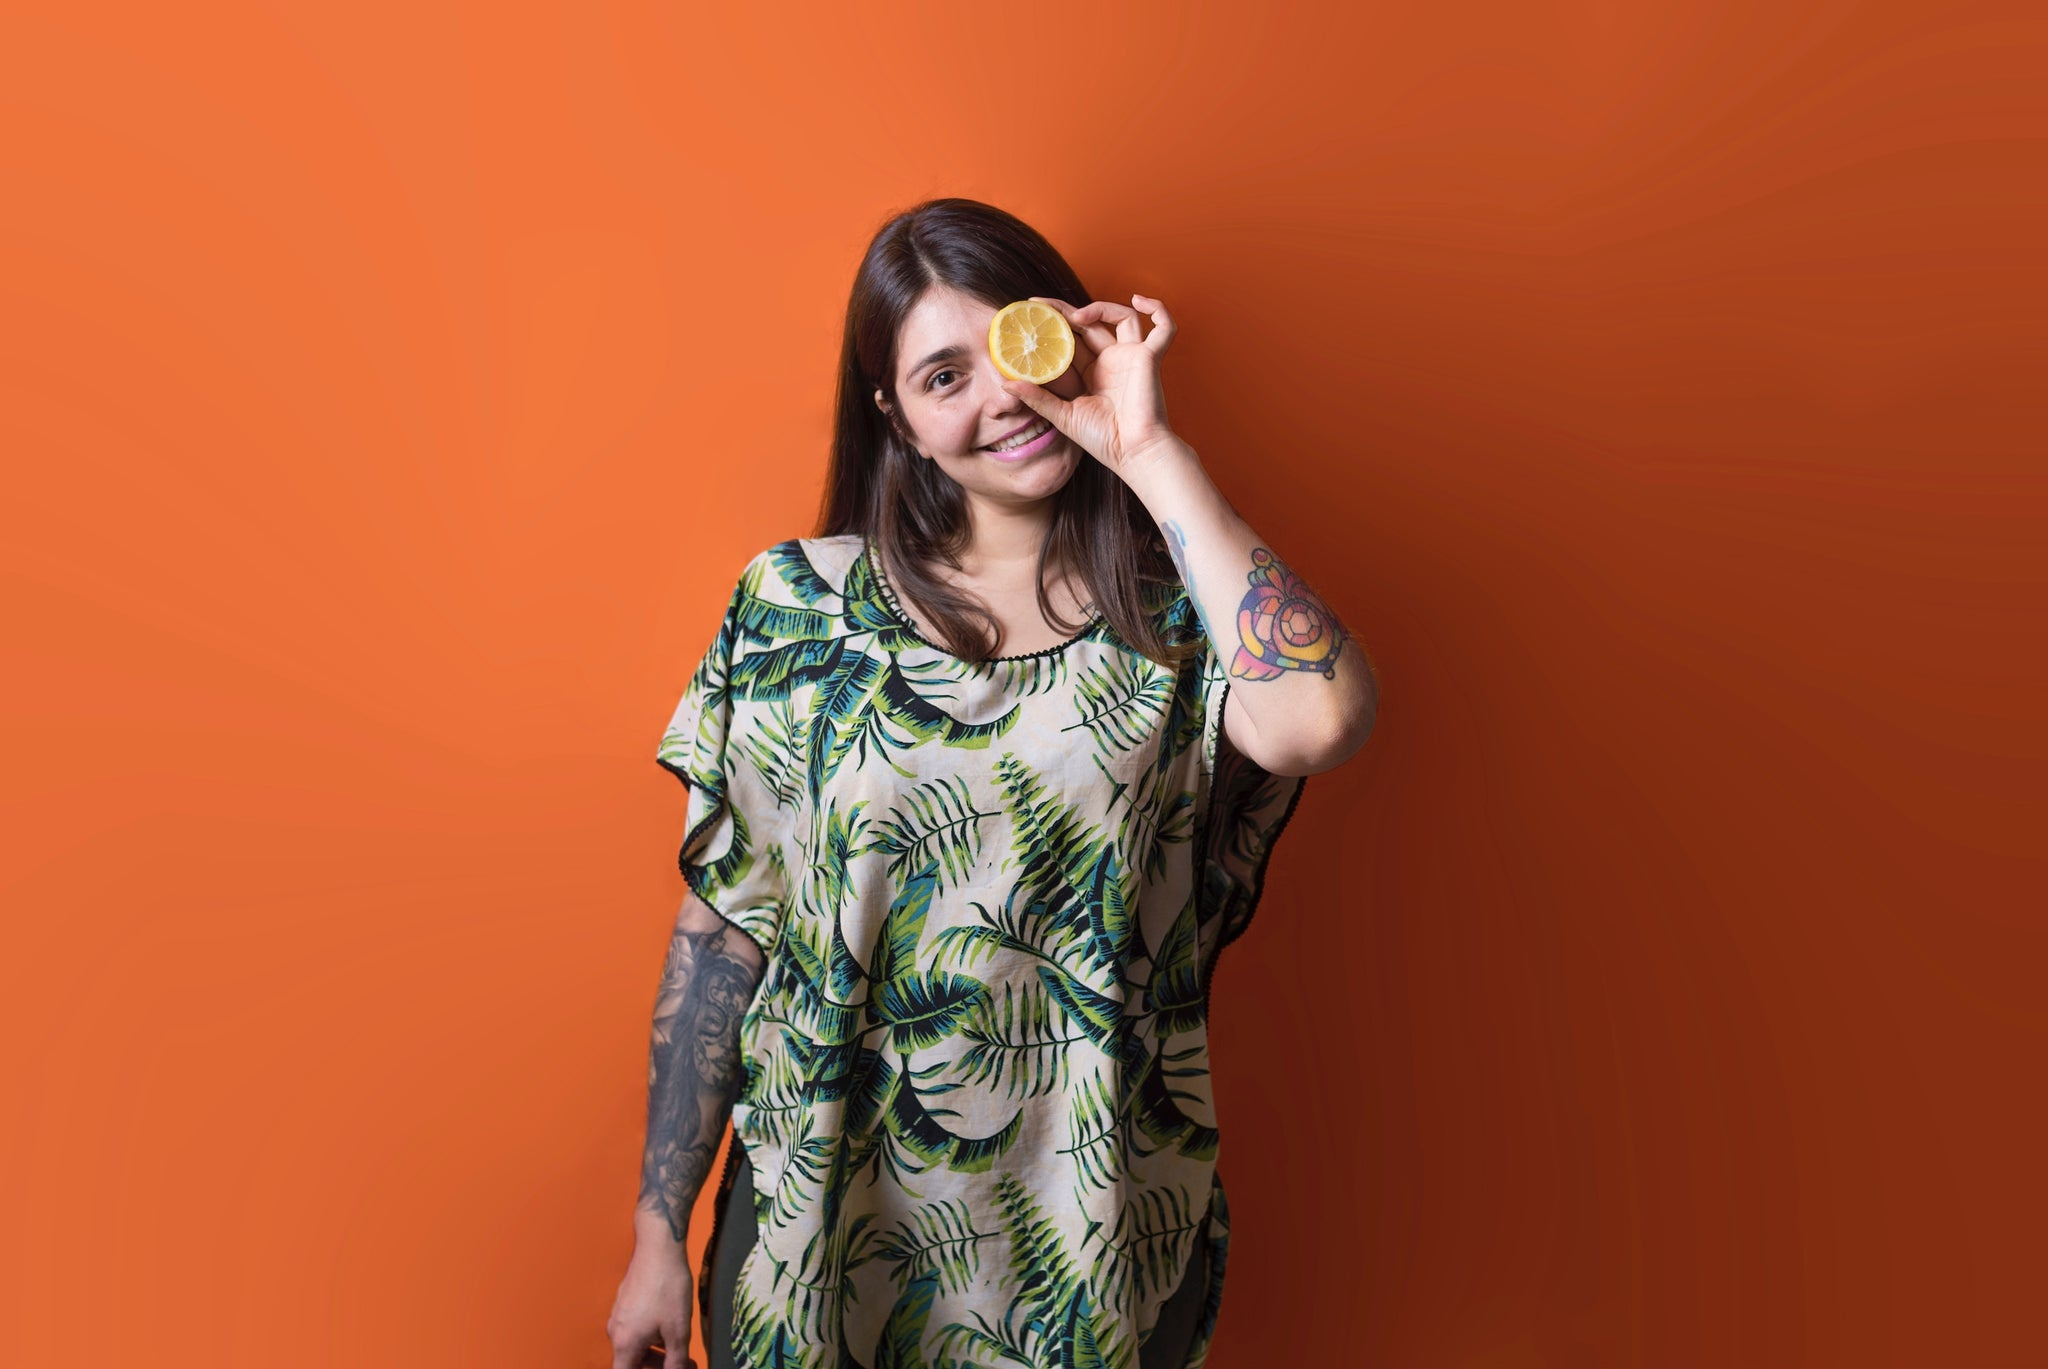 woman holding citrus over one eye